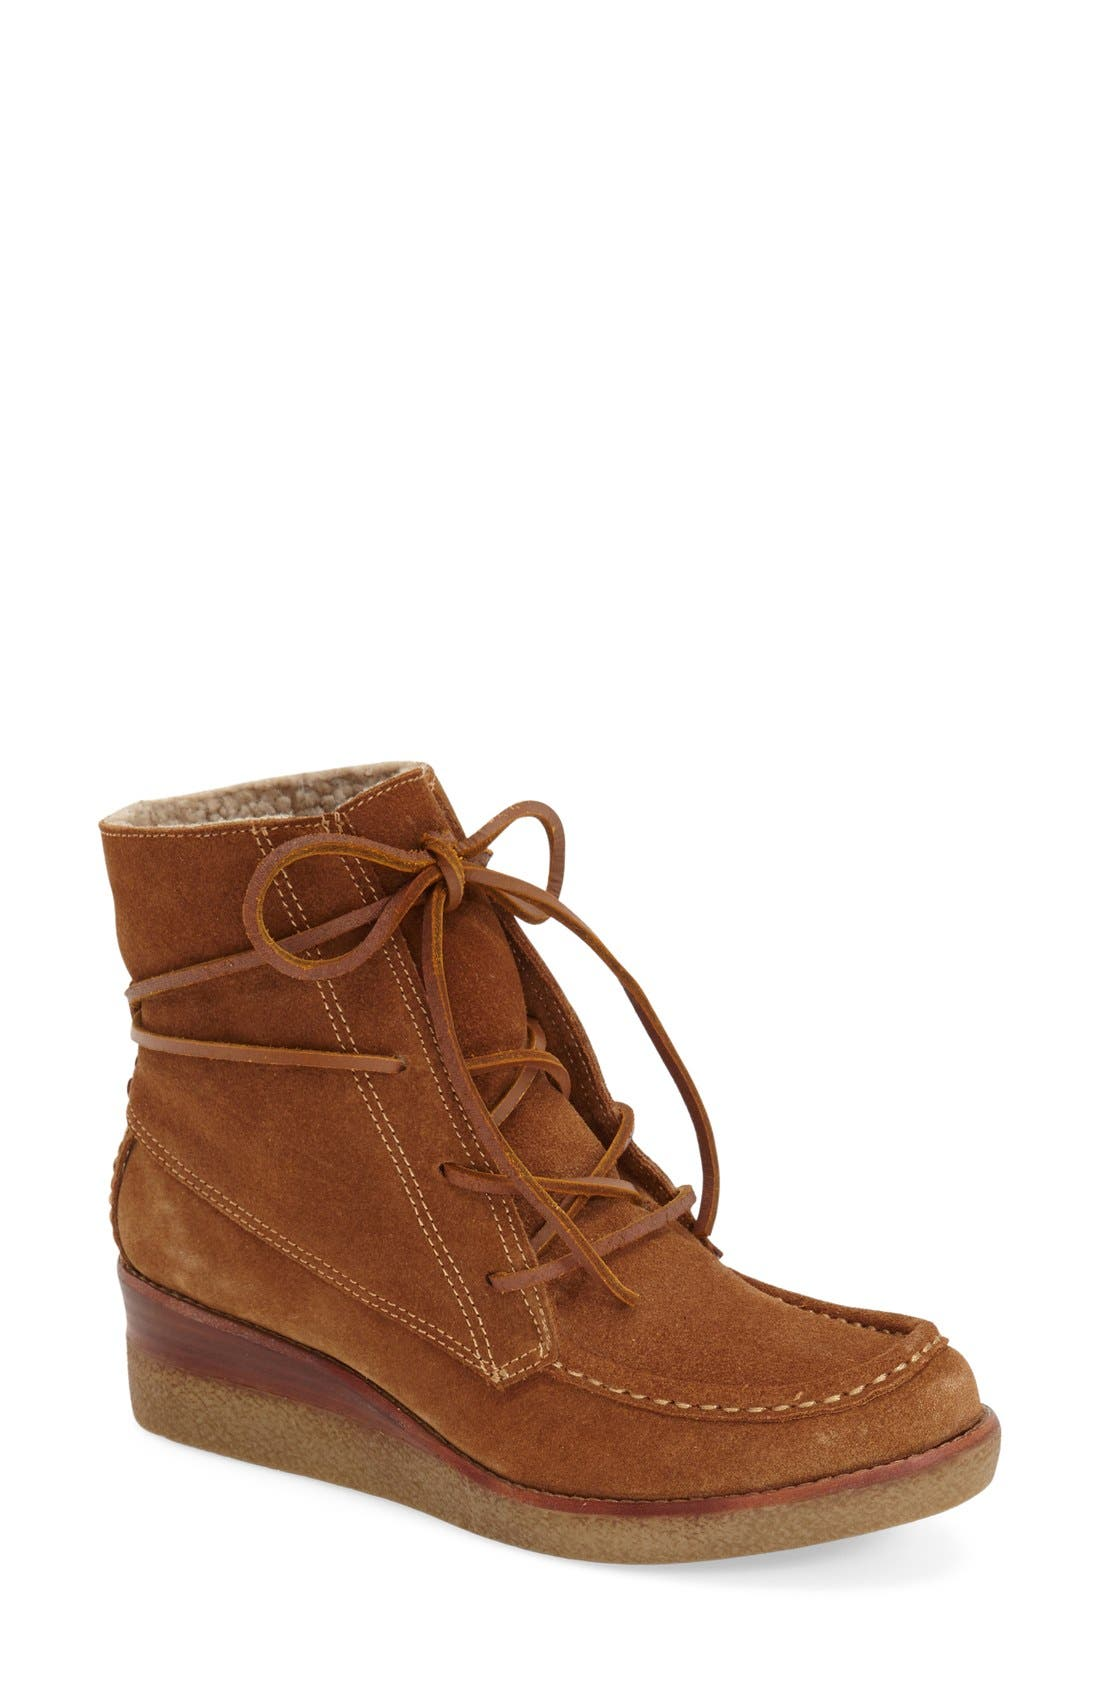 'Sylvia' Lace Up Bootie, Main, color, 291